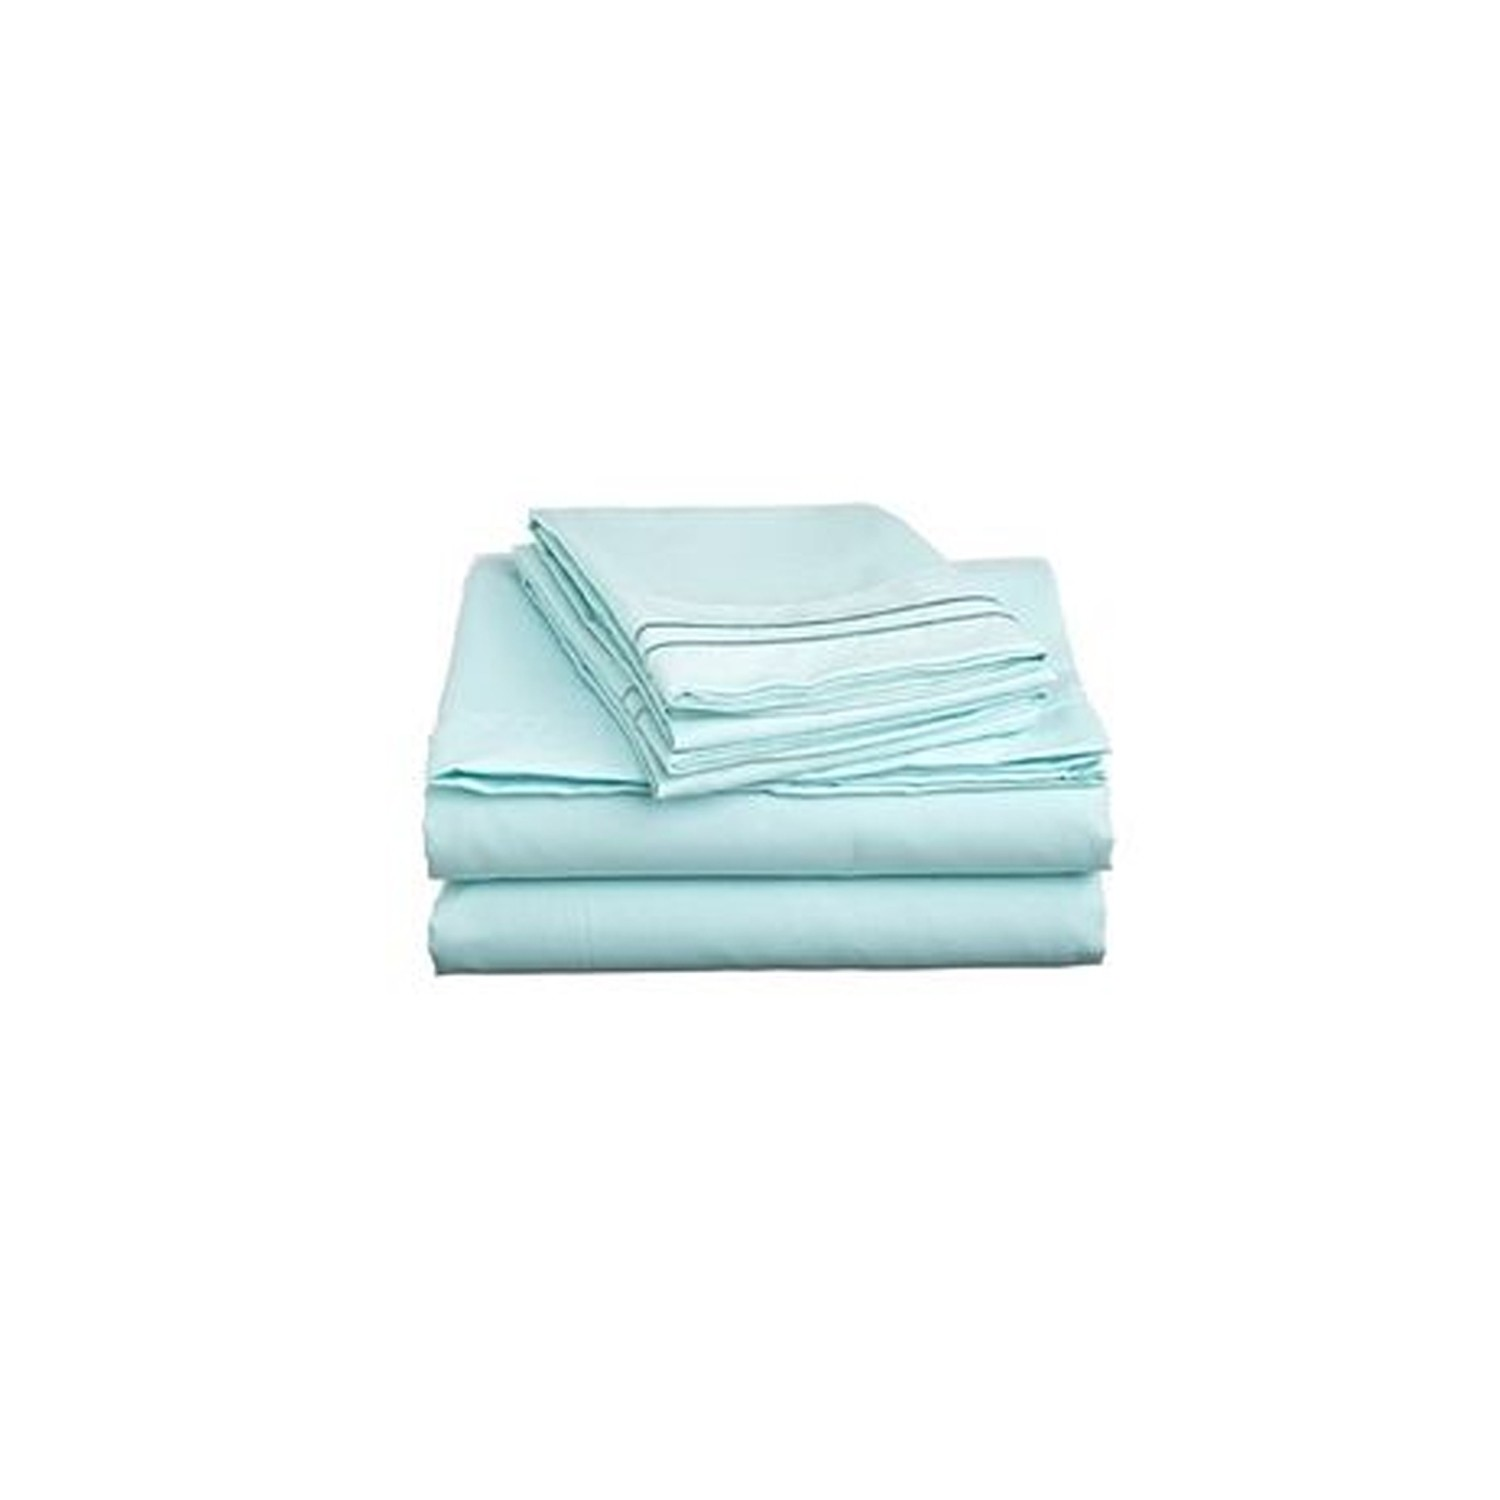 JS Sanders Twin Sheets Set - 1500 Thread Count